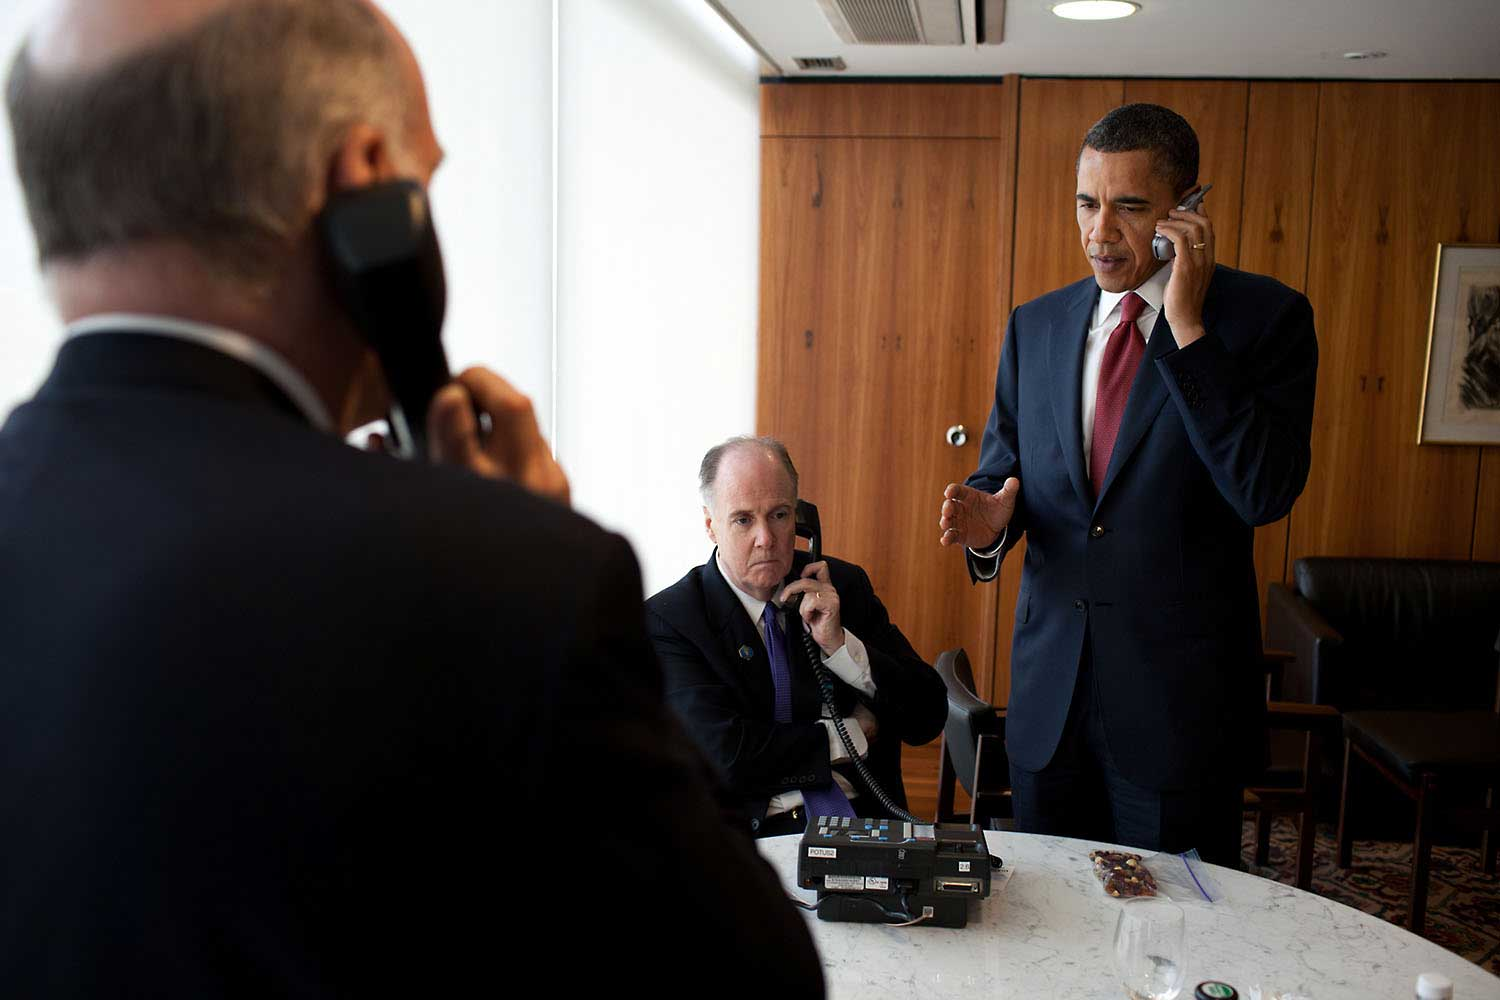 The President gives the final authorization for the armed forces of the United States to begin a limited military action in Libya in support of an international effort to protect Libyan civilians during a conference call in Brazil, March 19, 2011.